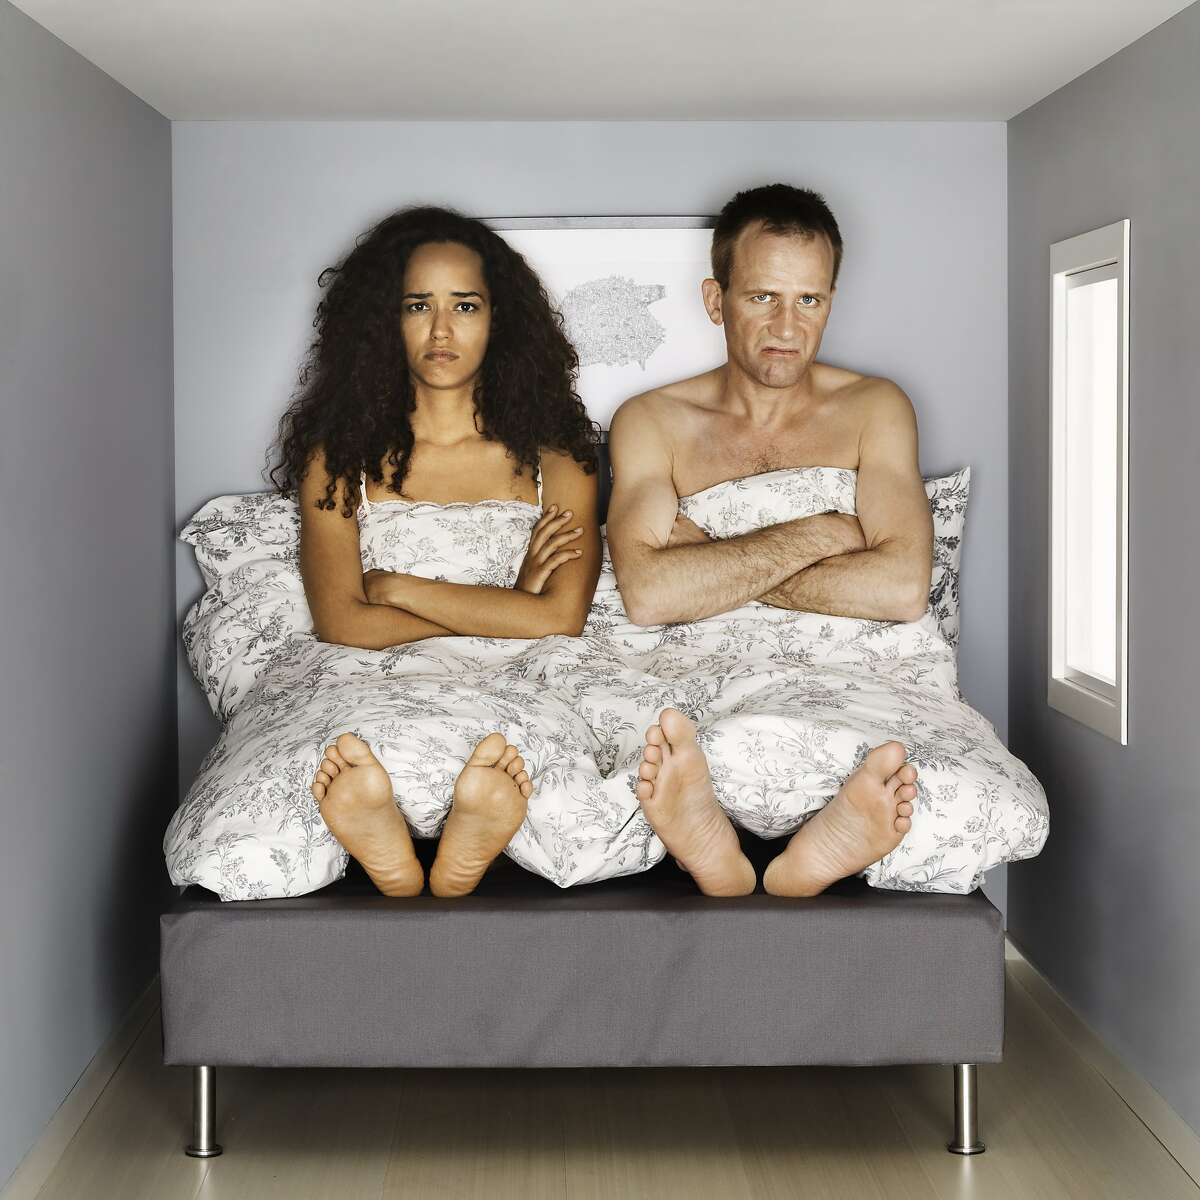 A couple doesn't sleep in the same bed.